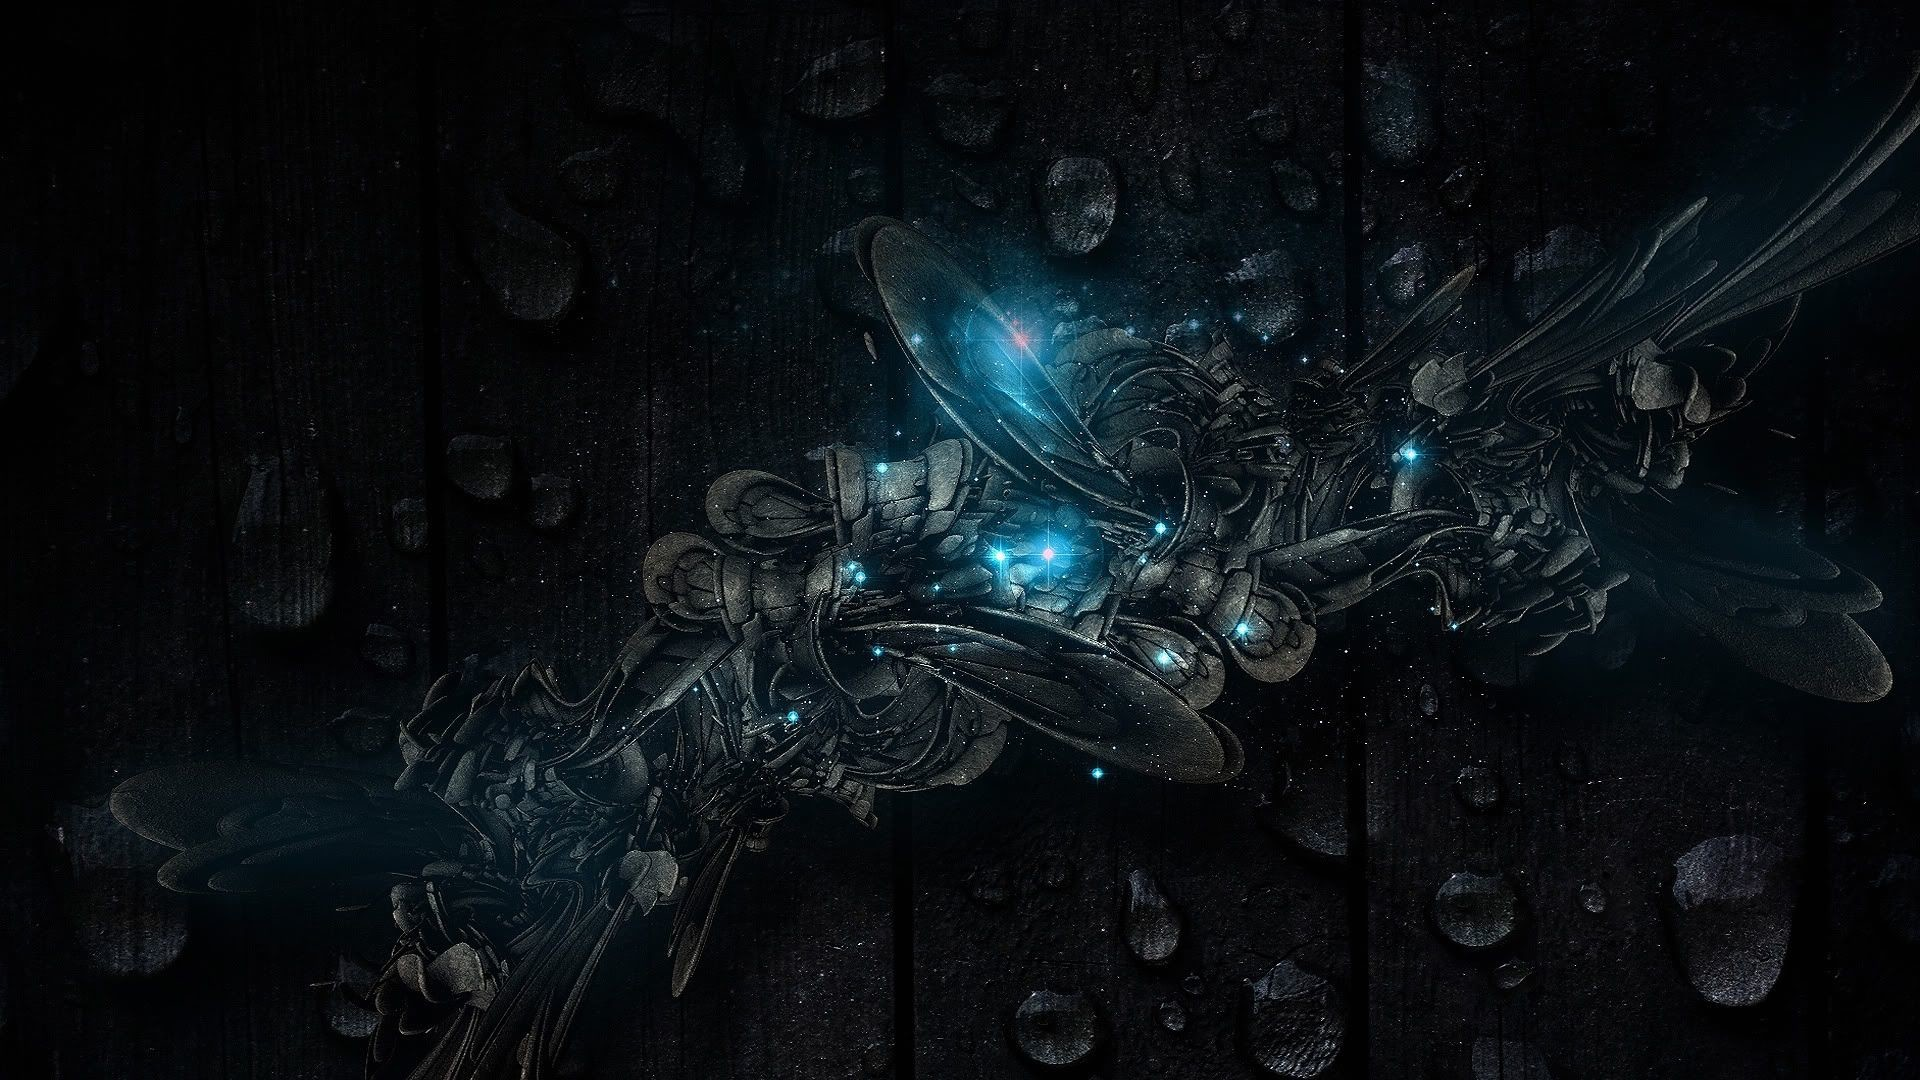 1920x1080 Blue And Black Backgrounds Wallpaper